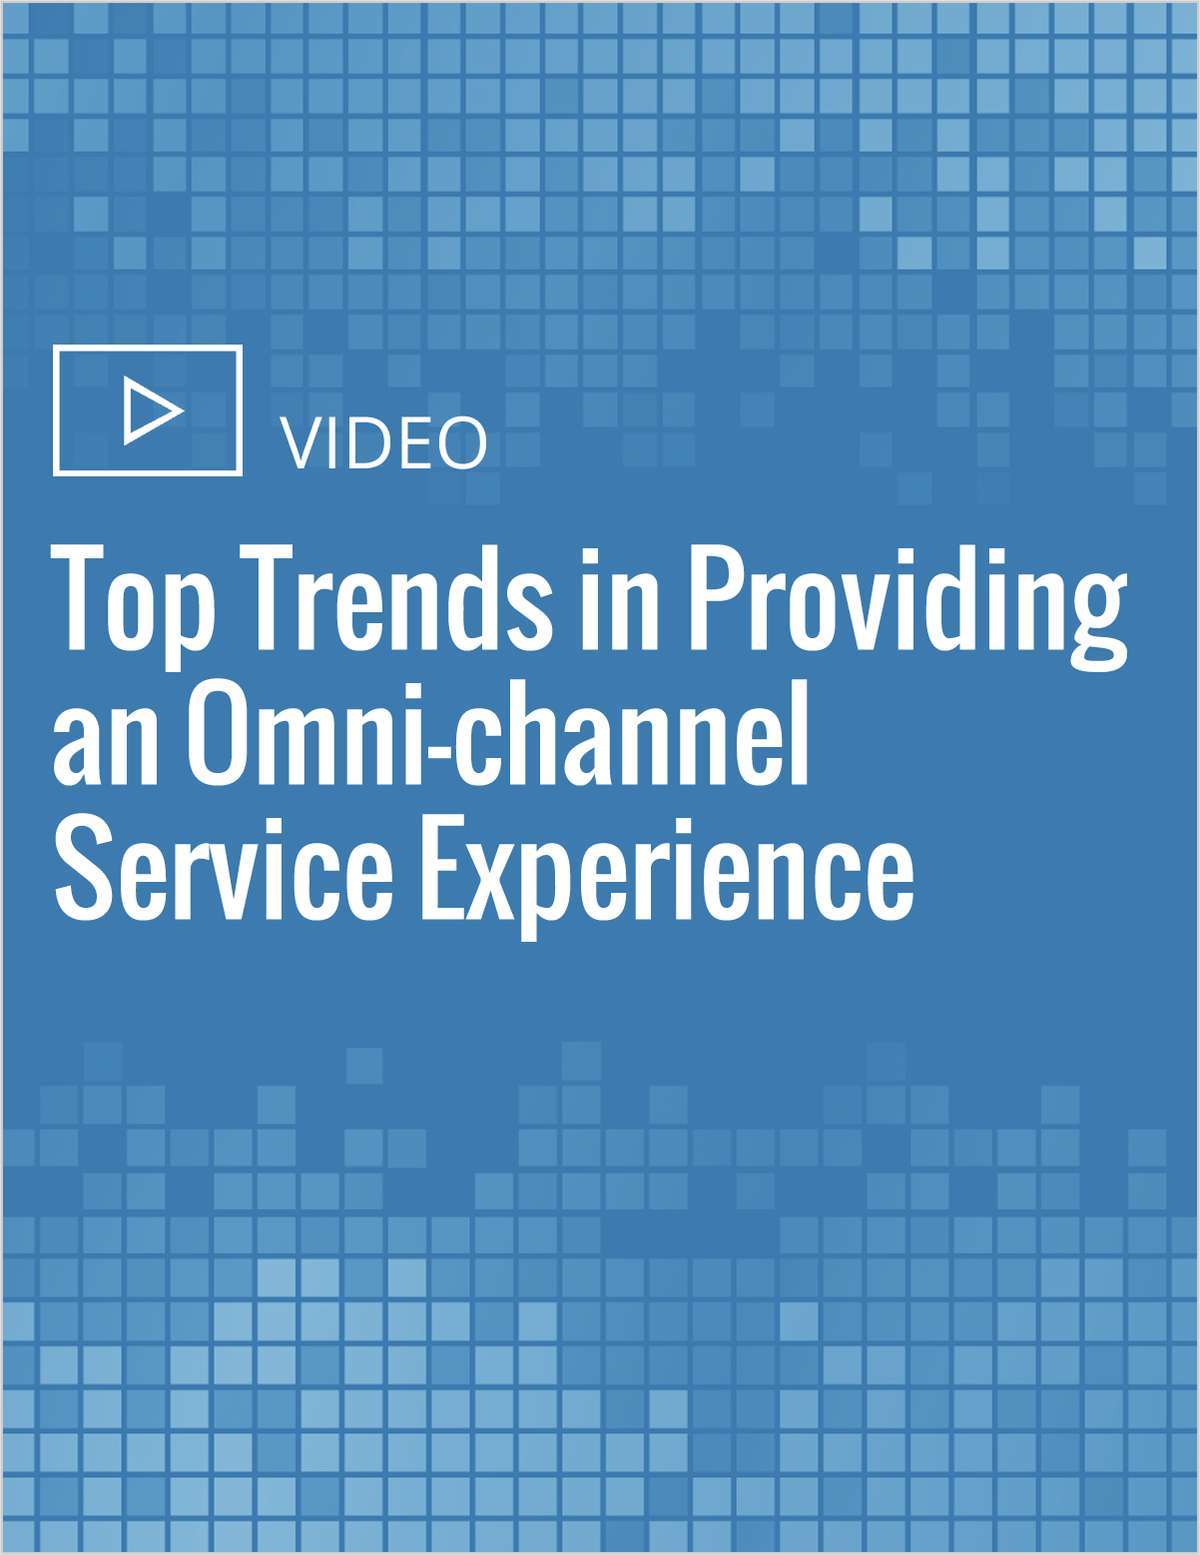 Top Trends in Providing an Omni-channel Service Experience